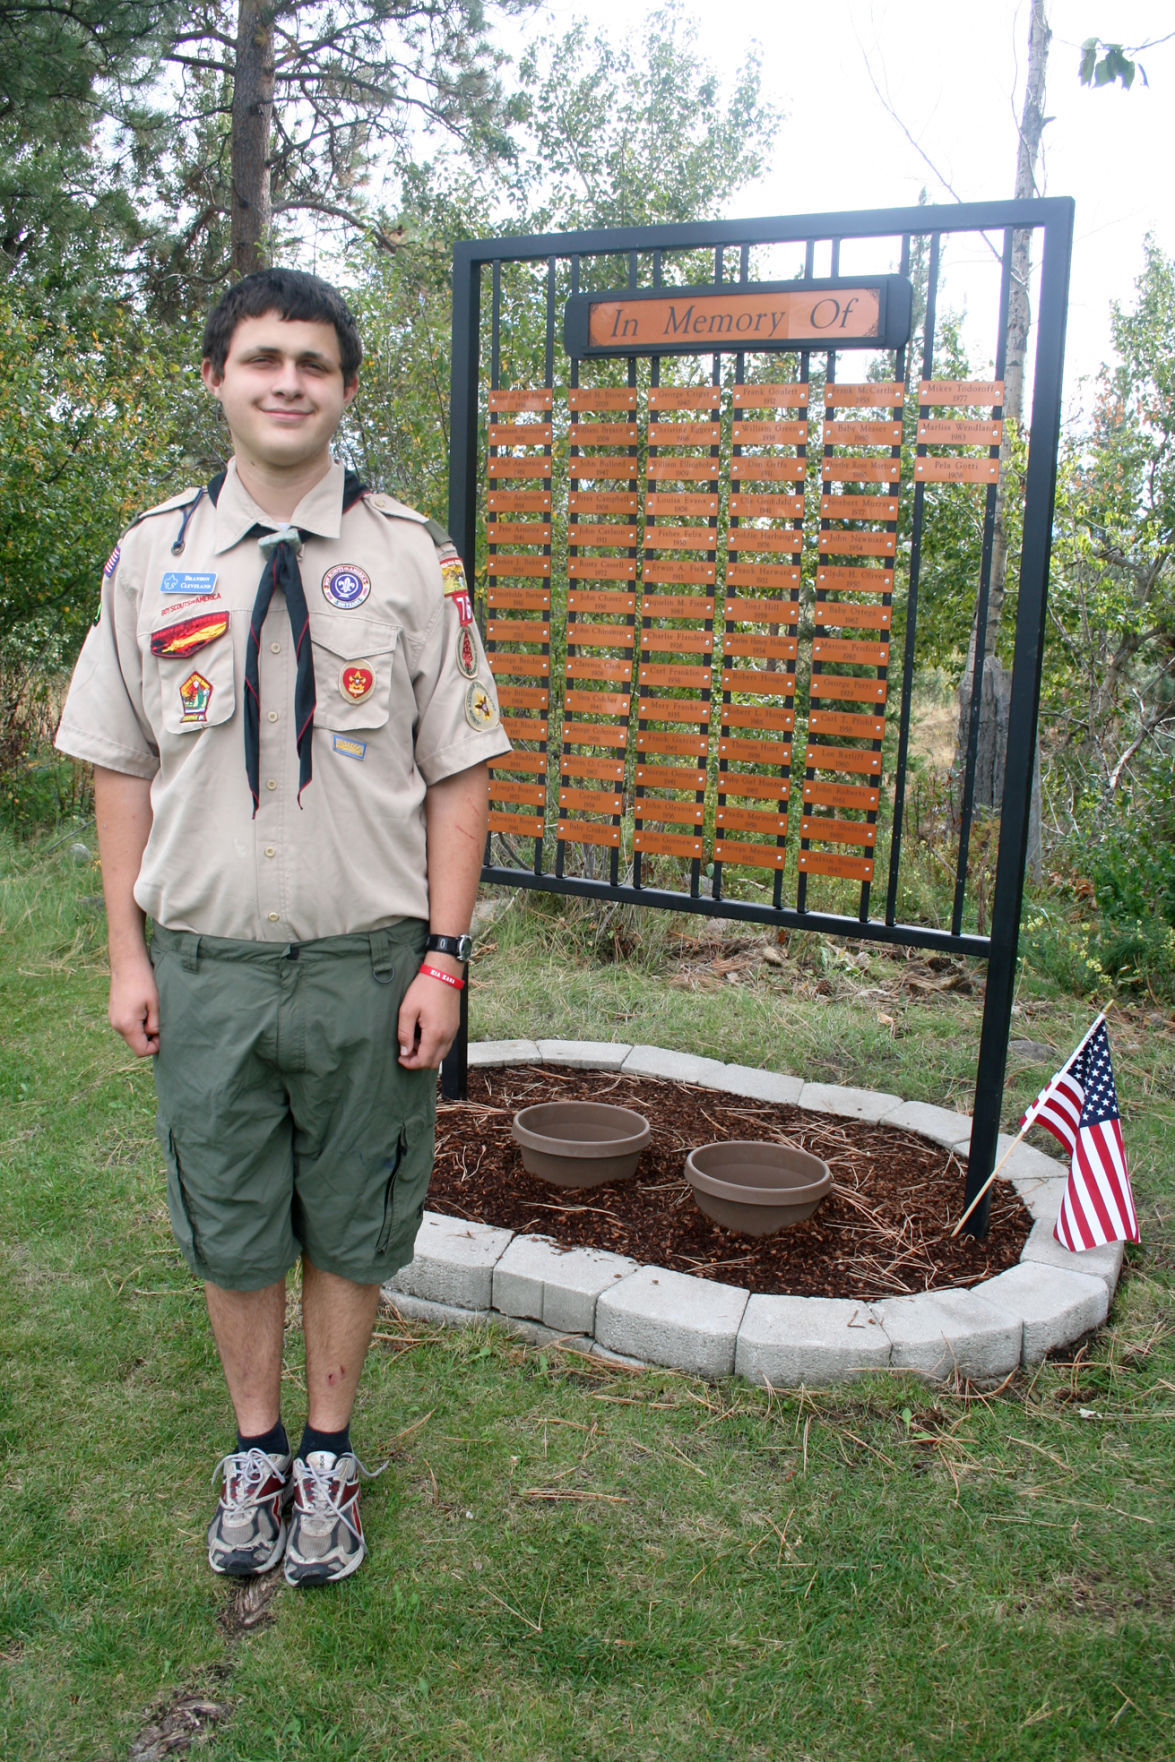 Potter's memorial: Scout erects sign for unmarked burial sites in Hamilton Cemetery